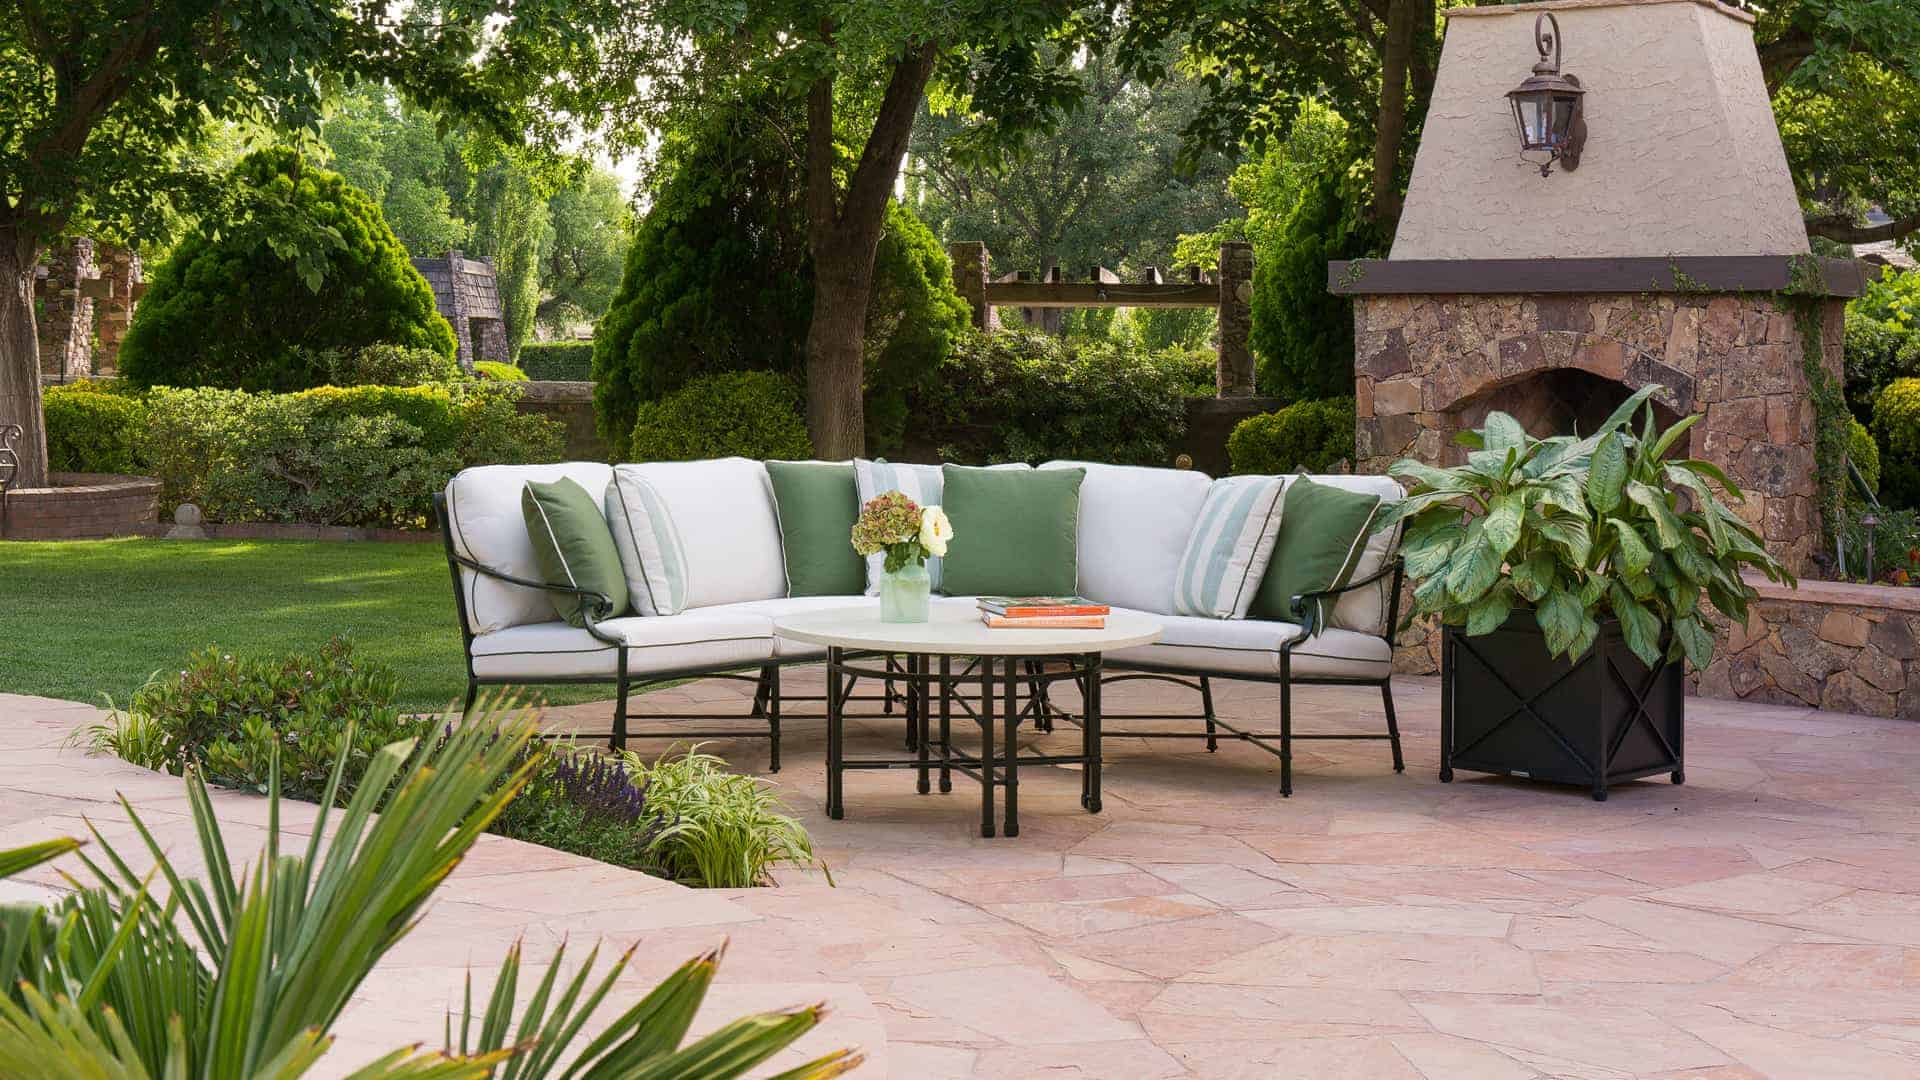 White outdoor couch with green cushions